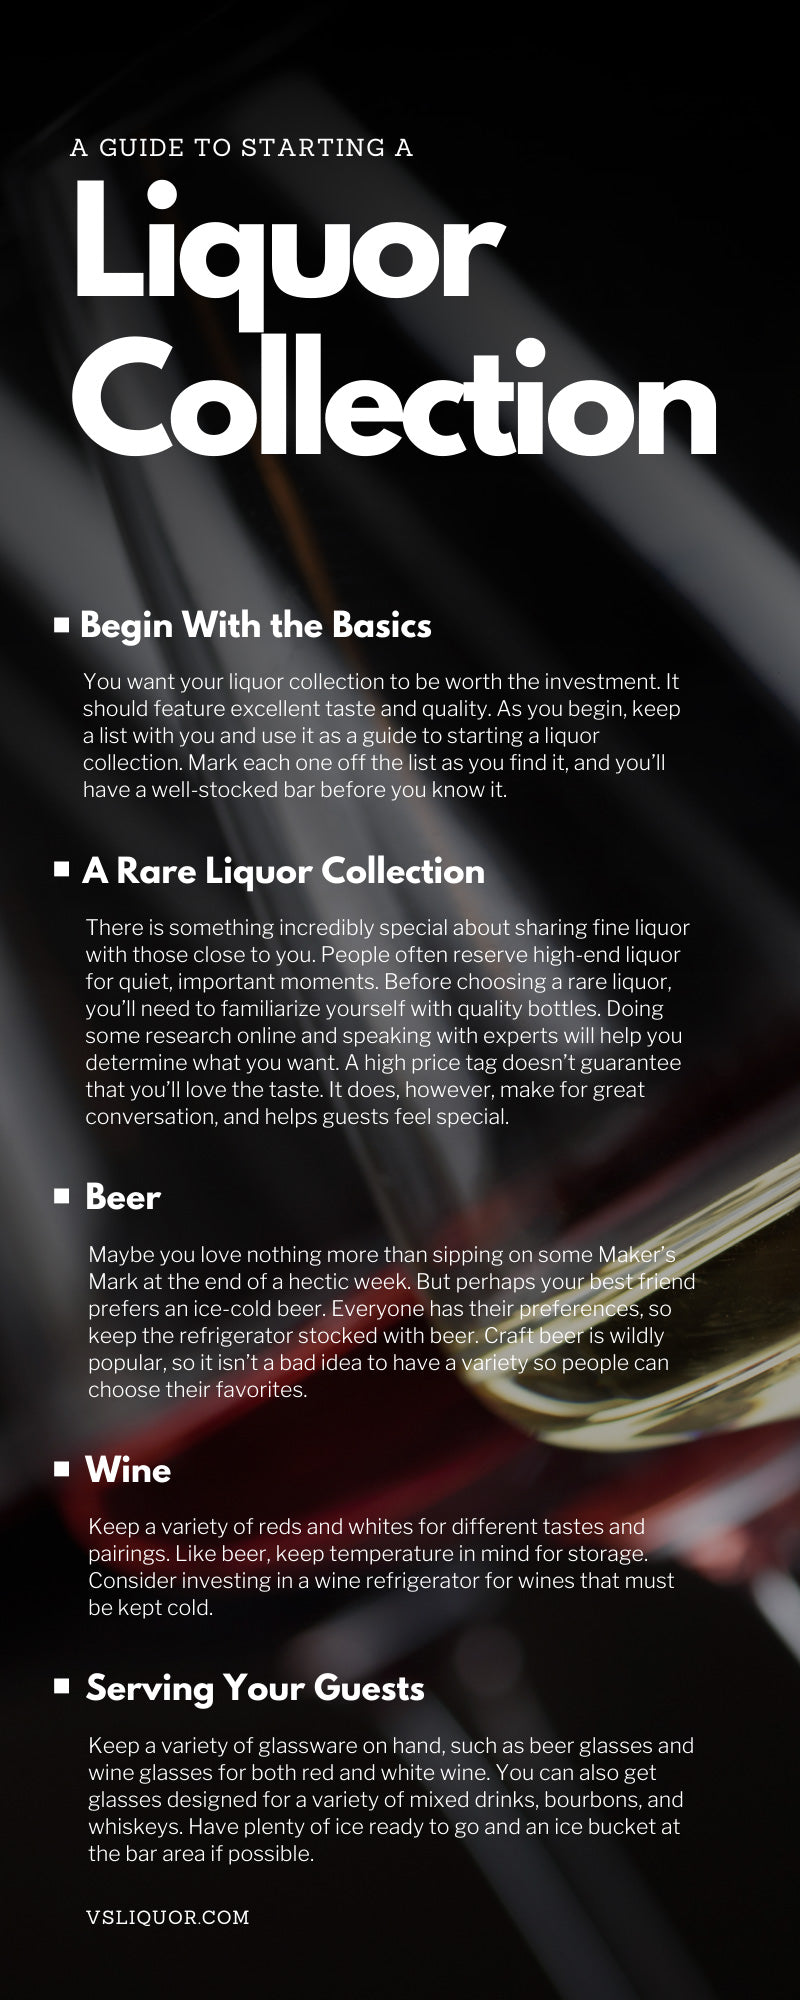 A Guide To Starting a Liquor Collection